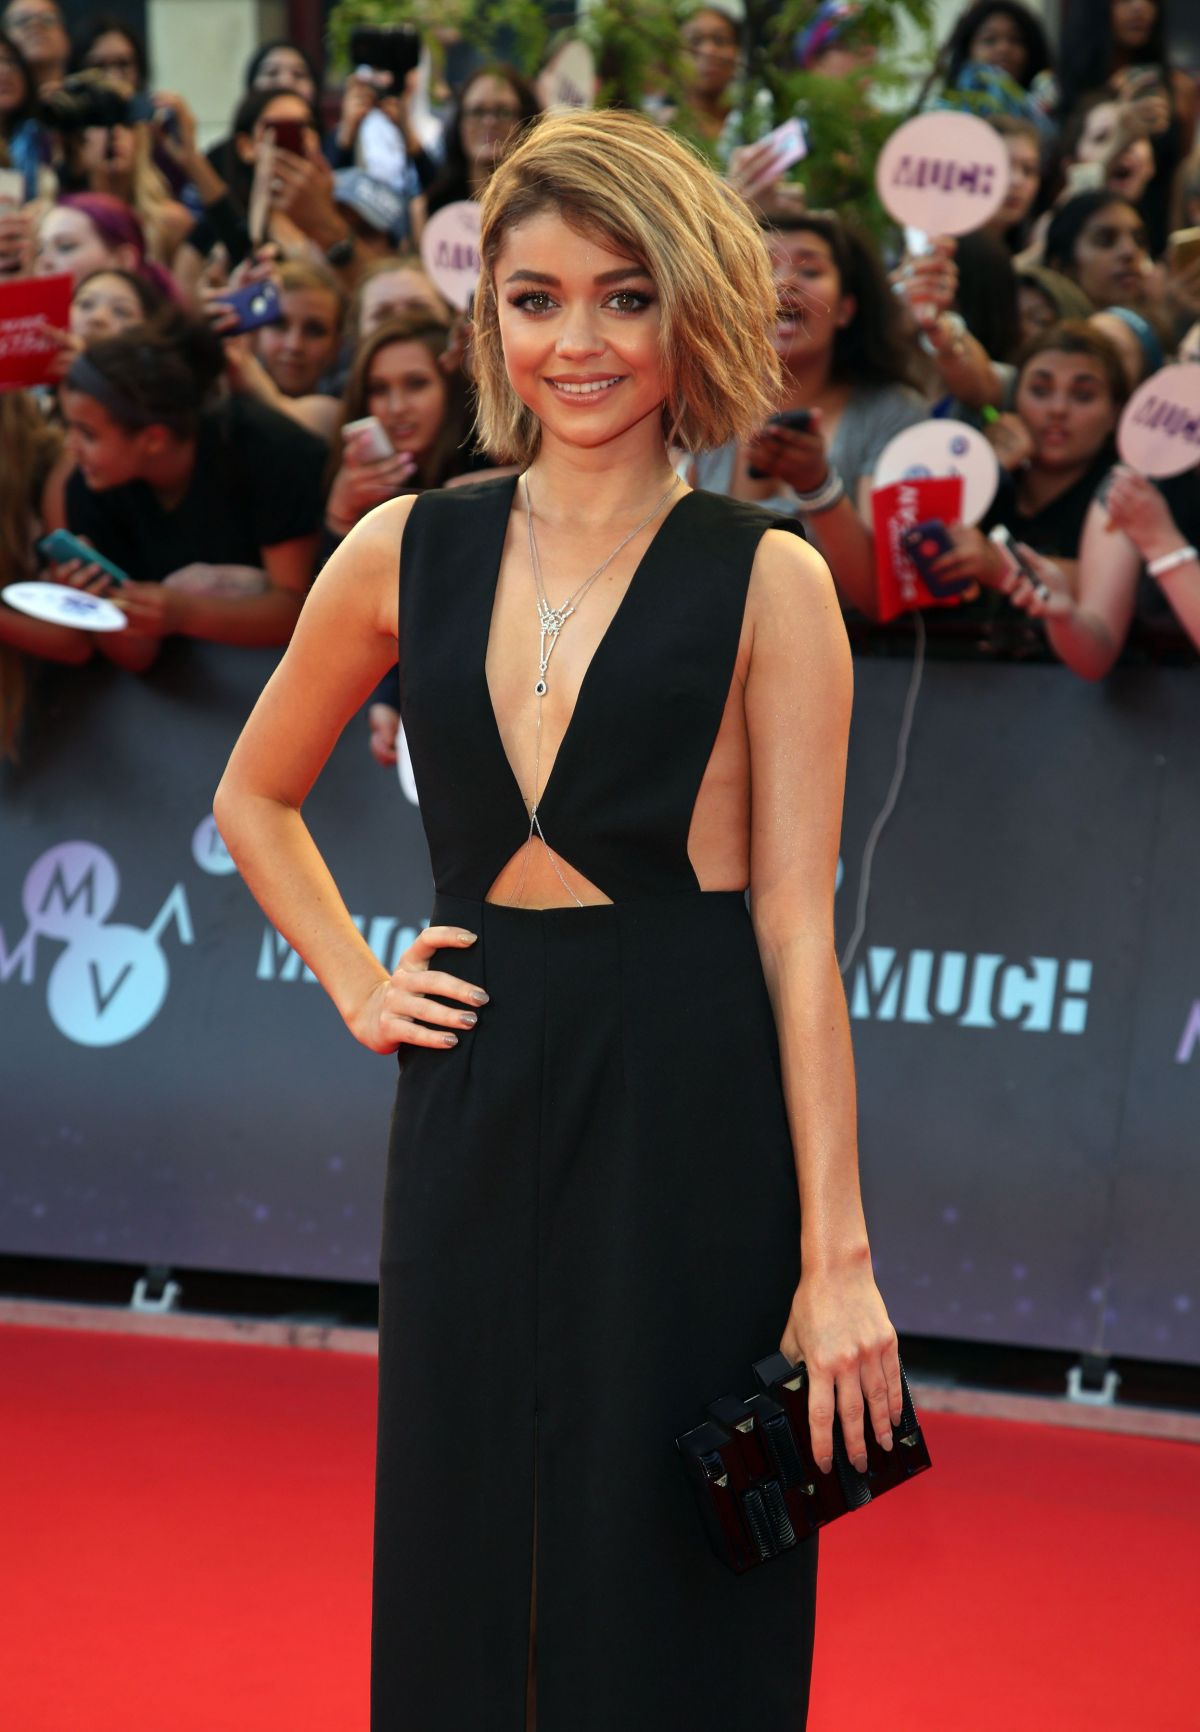 SARAH HYLAND at 2015 MuchMusic Video Awards in Toronto